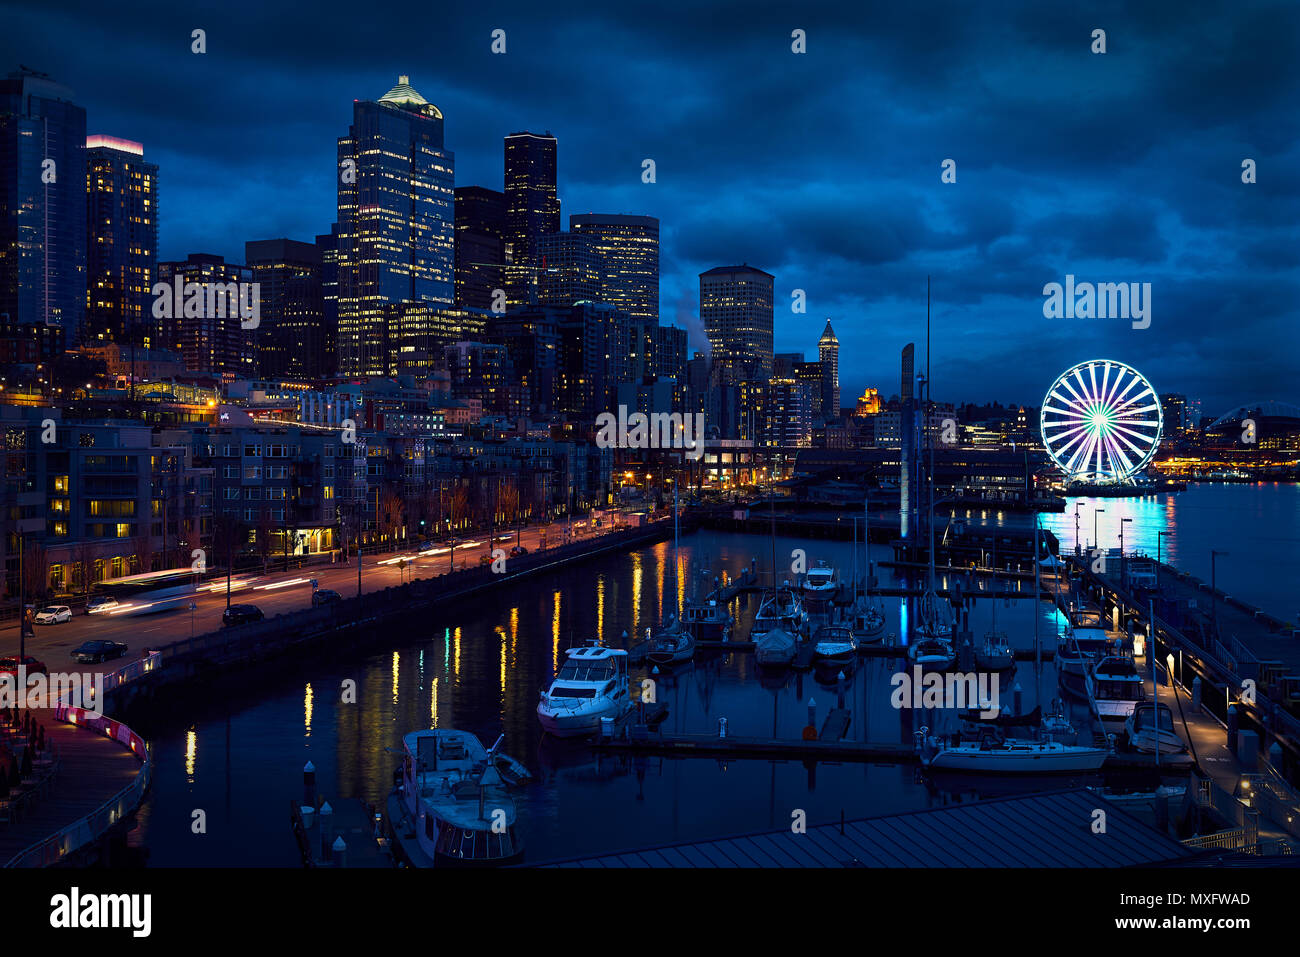 Seattle Waterfront, Big Wheel  Downtown Seattle skyline at dusk. The ferris wheel stands out along the shoreline. Washington State, USA. - Stock Image